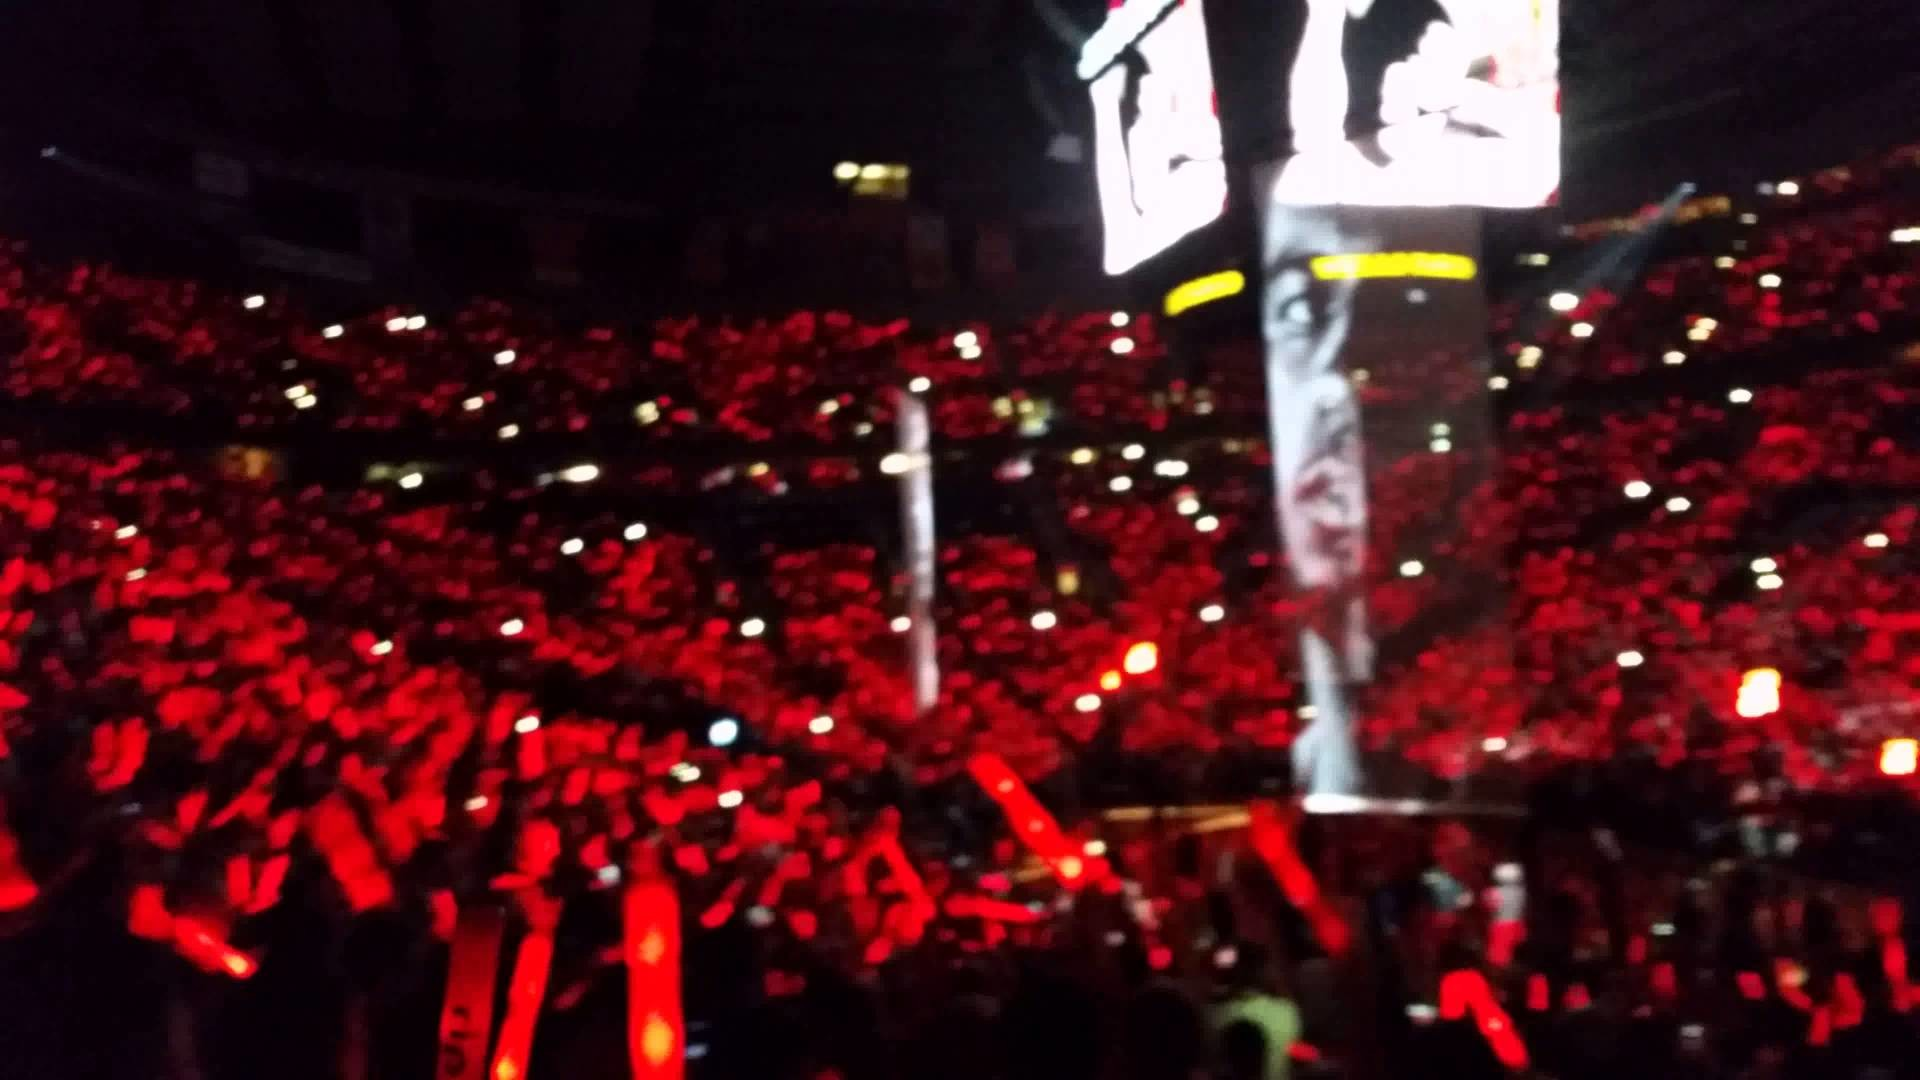 1920x1080 Portland Trail Blazers Game 6 Intro vs. Spurs (4K Samsung Galaxy 5 Video)